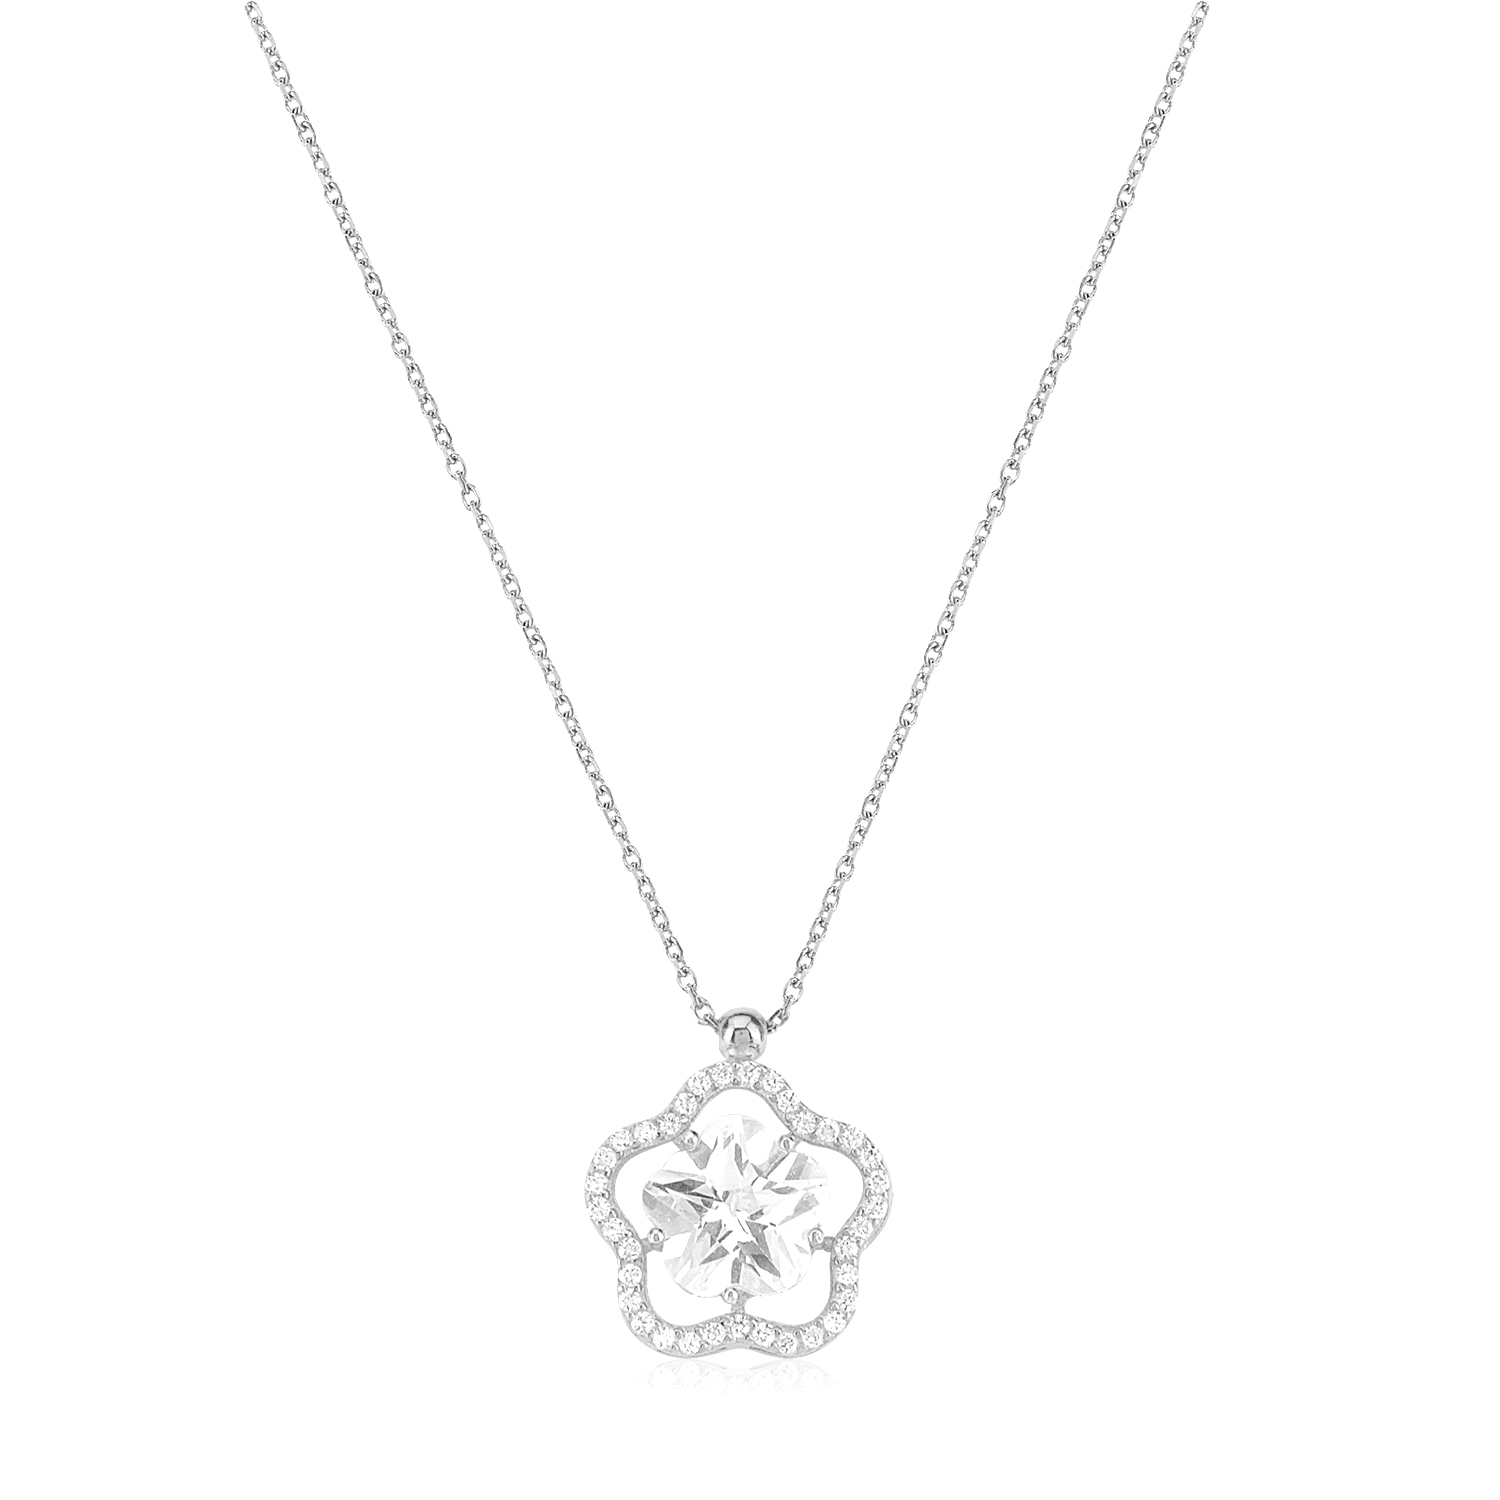 cosar-silver-925-sterling-silver-round-pave-necklace